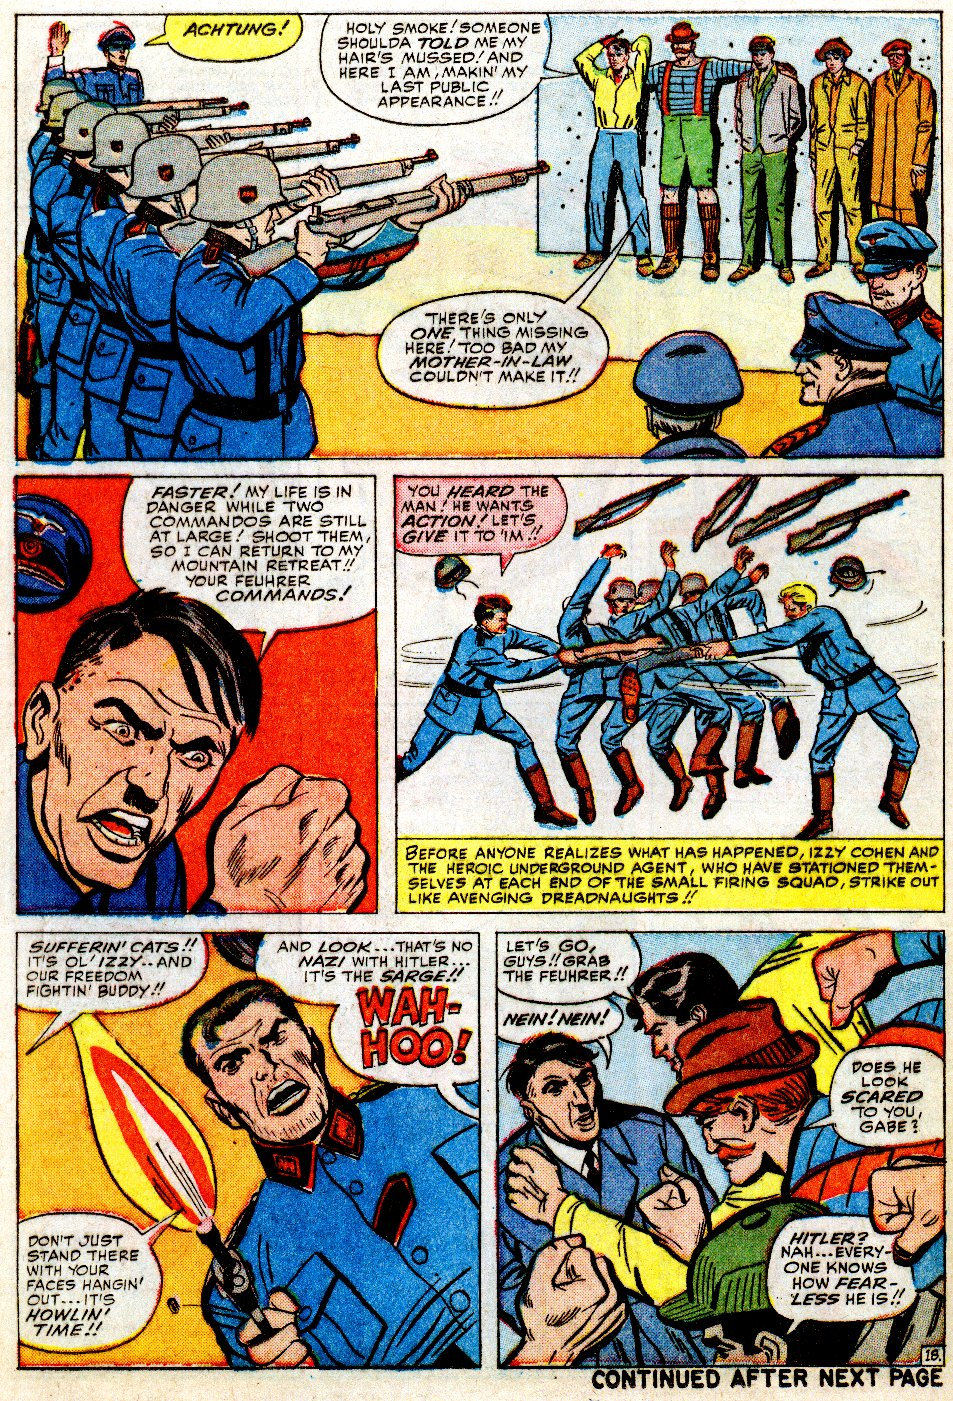 Read online Sgt. Fury comic -  Issue #9 - 24